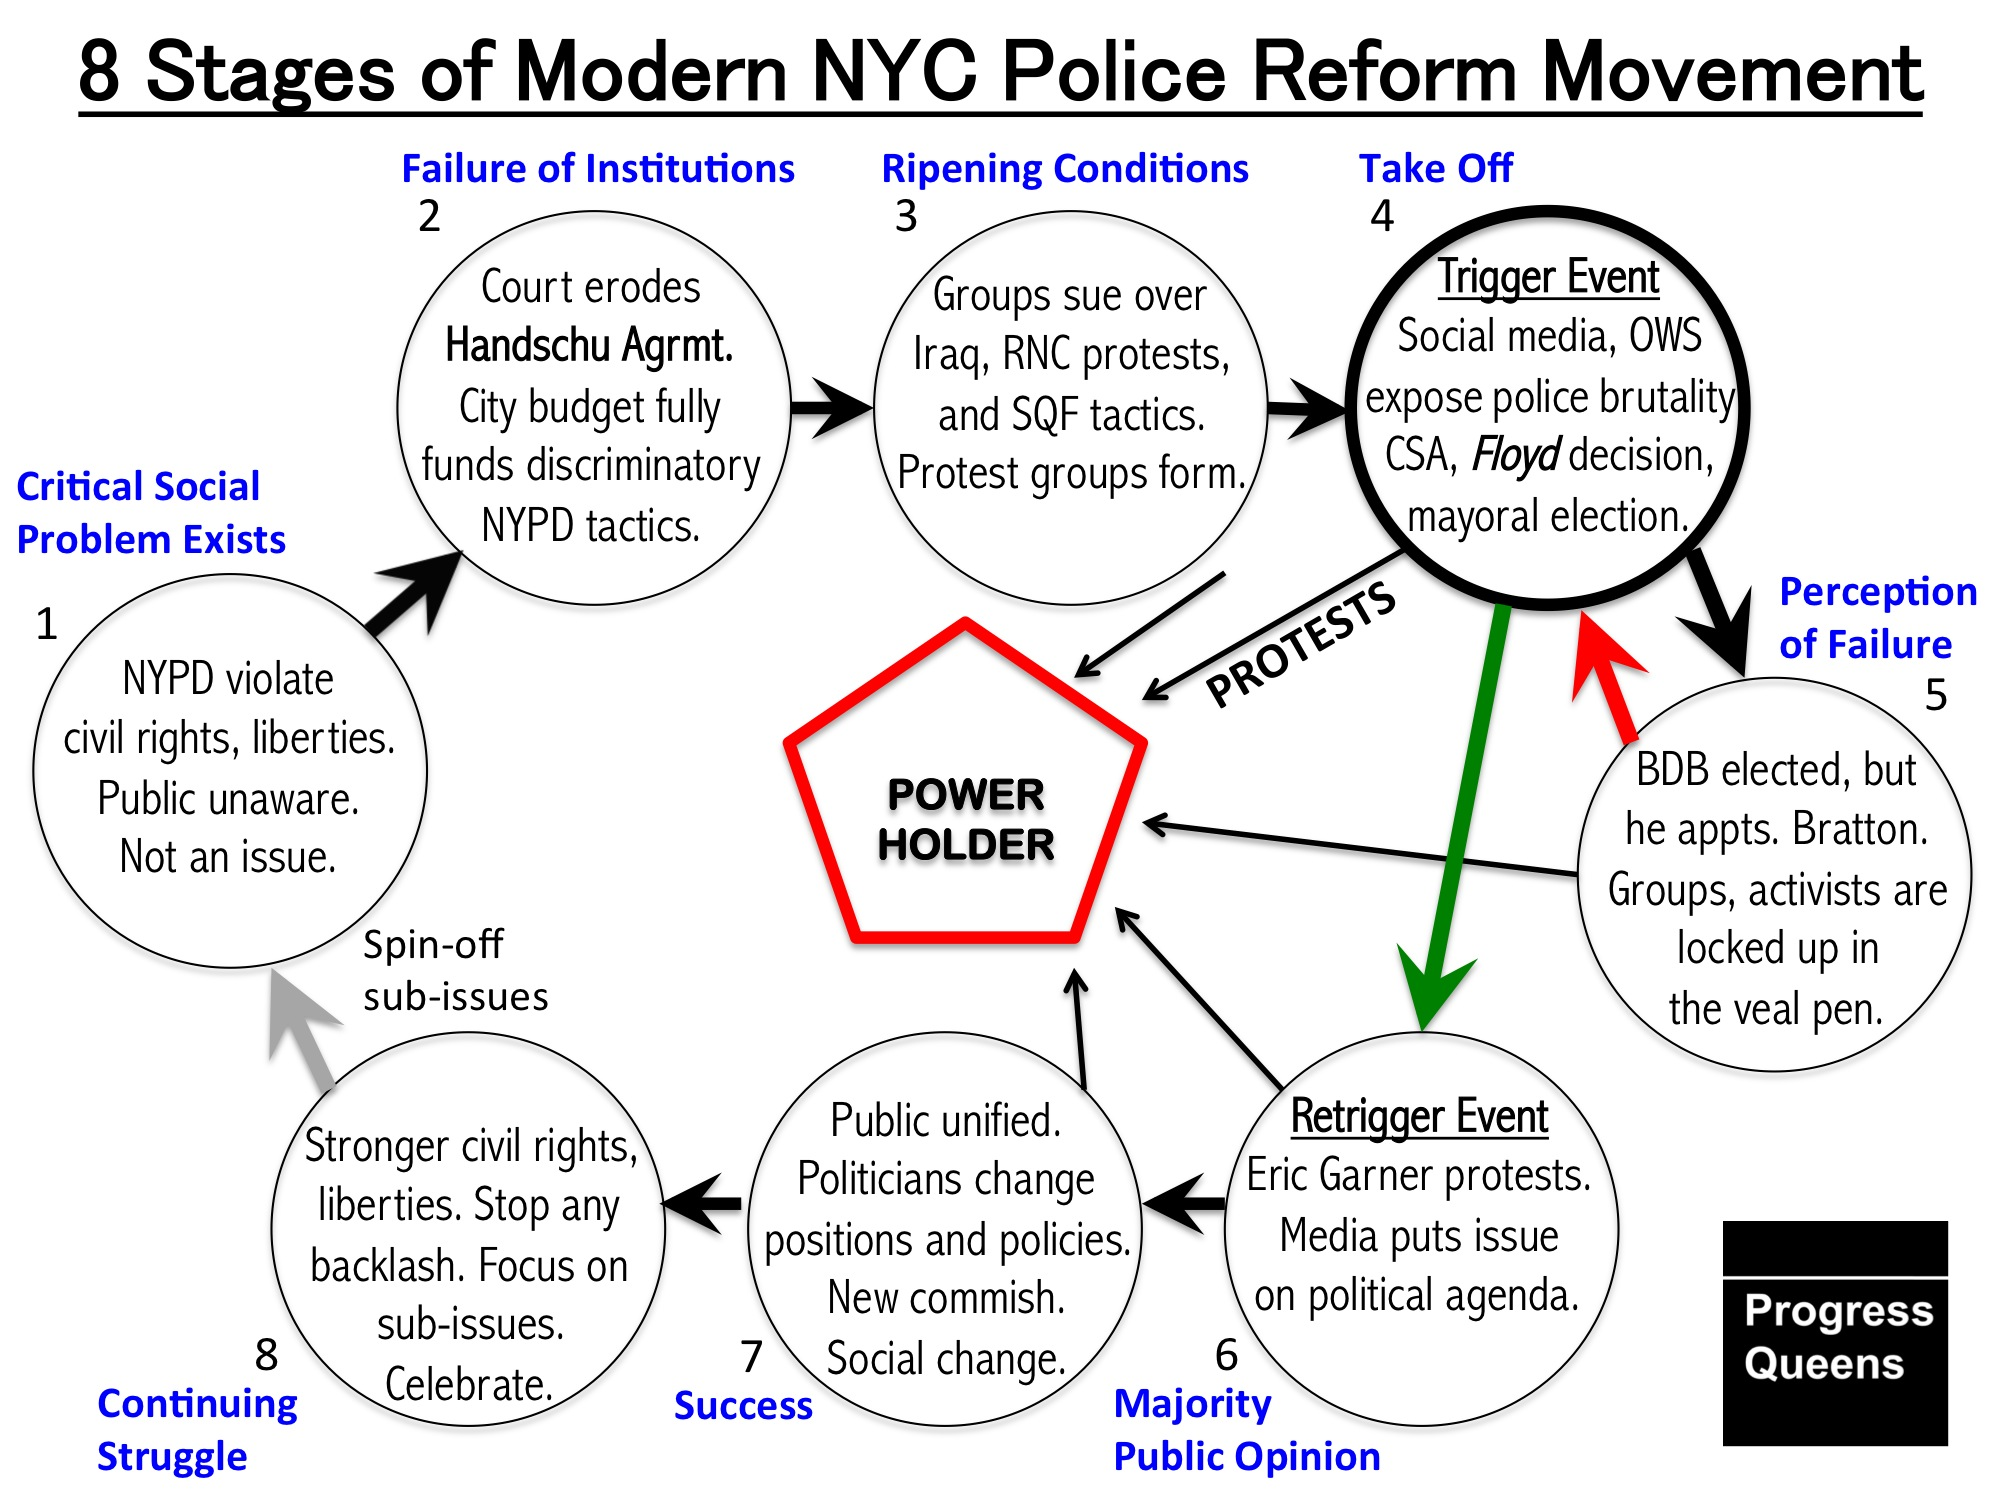 Progress Queens adopted the Movement Action Plan as developed by  Bill Moyer  to describe the modern  police reform movement  in New York City. Just as police reform activists had shifted the movement to reform the  NYPD  into Stage 6, Mayor  Bill de Blasio  called for a halt in police reform protests. Source : Movement Action Plan/Bill Moyer/Adopted and Modifiedby Louis Flores